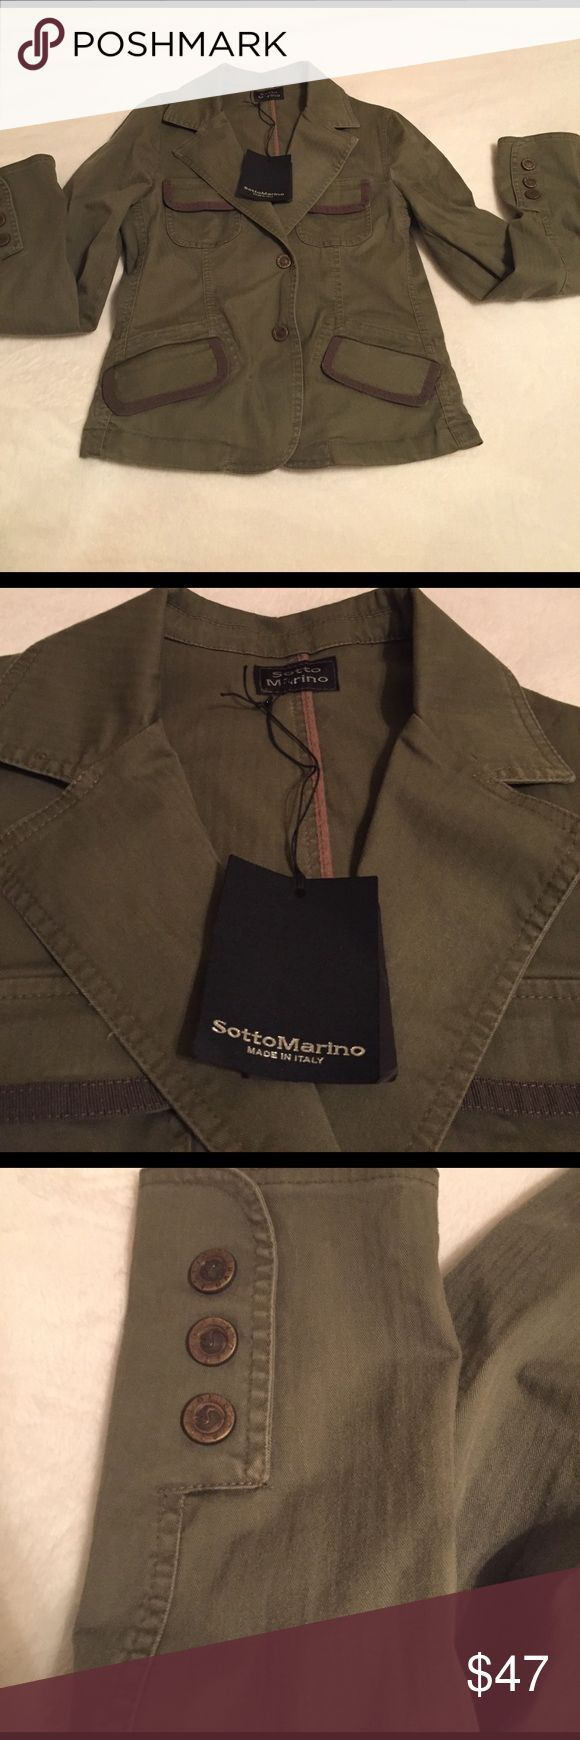 Sotto Marino Olive Green Jacket (Medium) Olive green Sotto Marino jacket made in Italy. Medium size with two front buttons. Never been worn new with tags. 97% cotton Sotto Marino Jackets & Coats